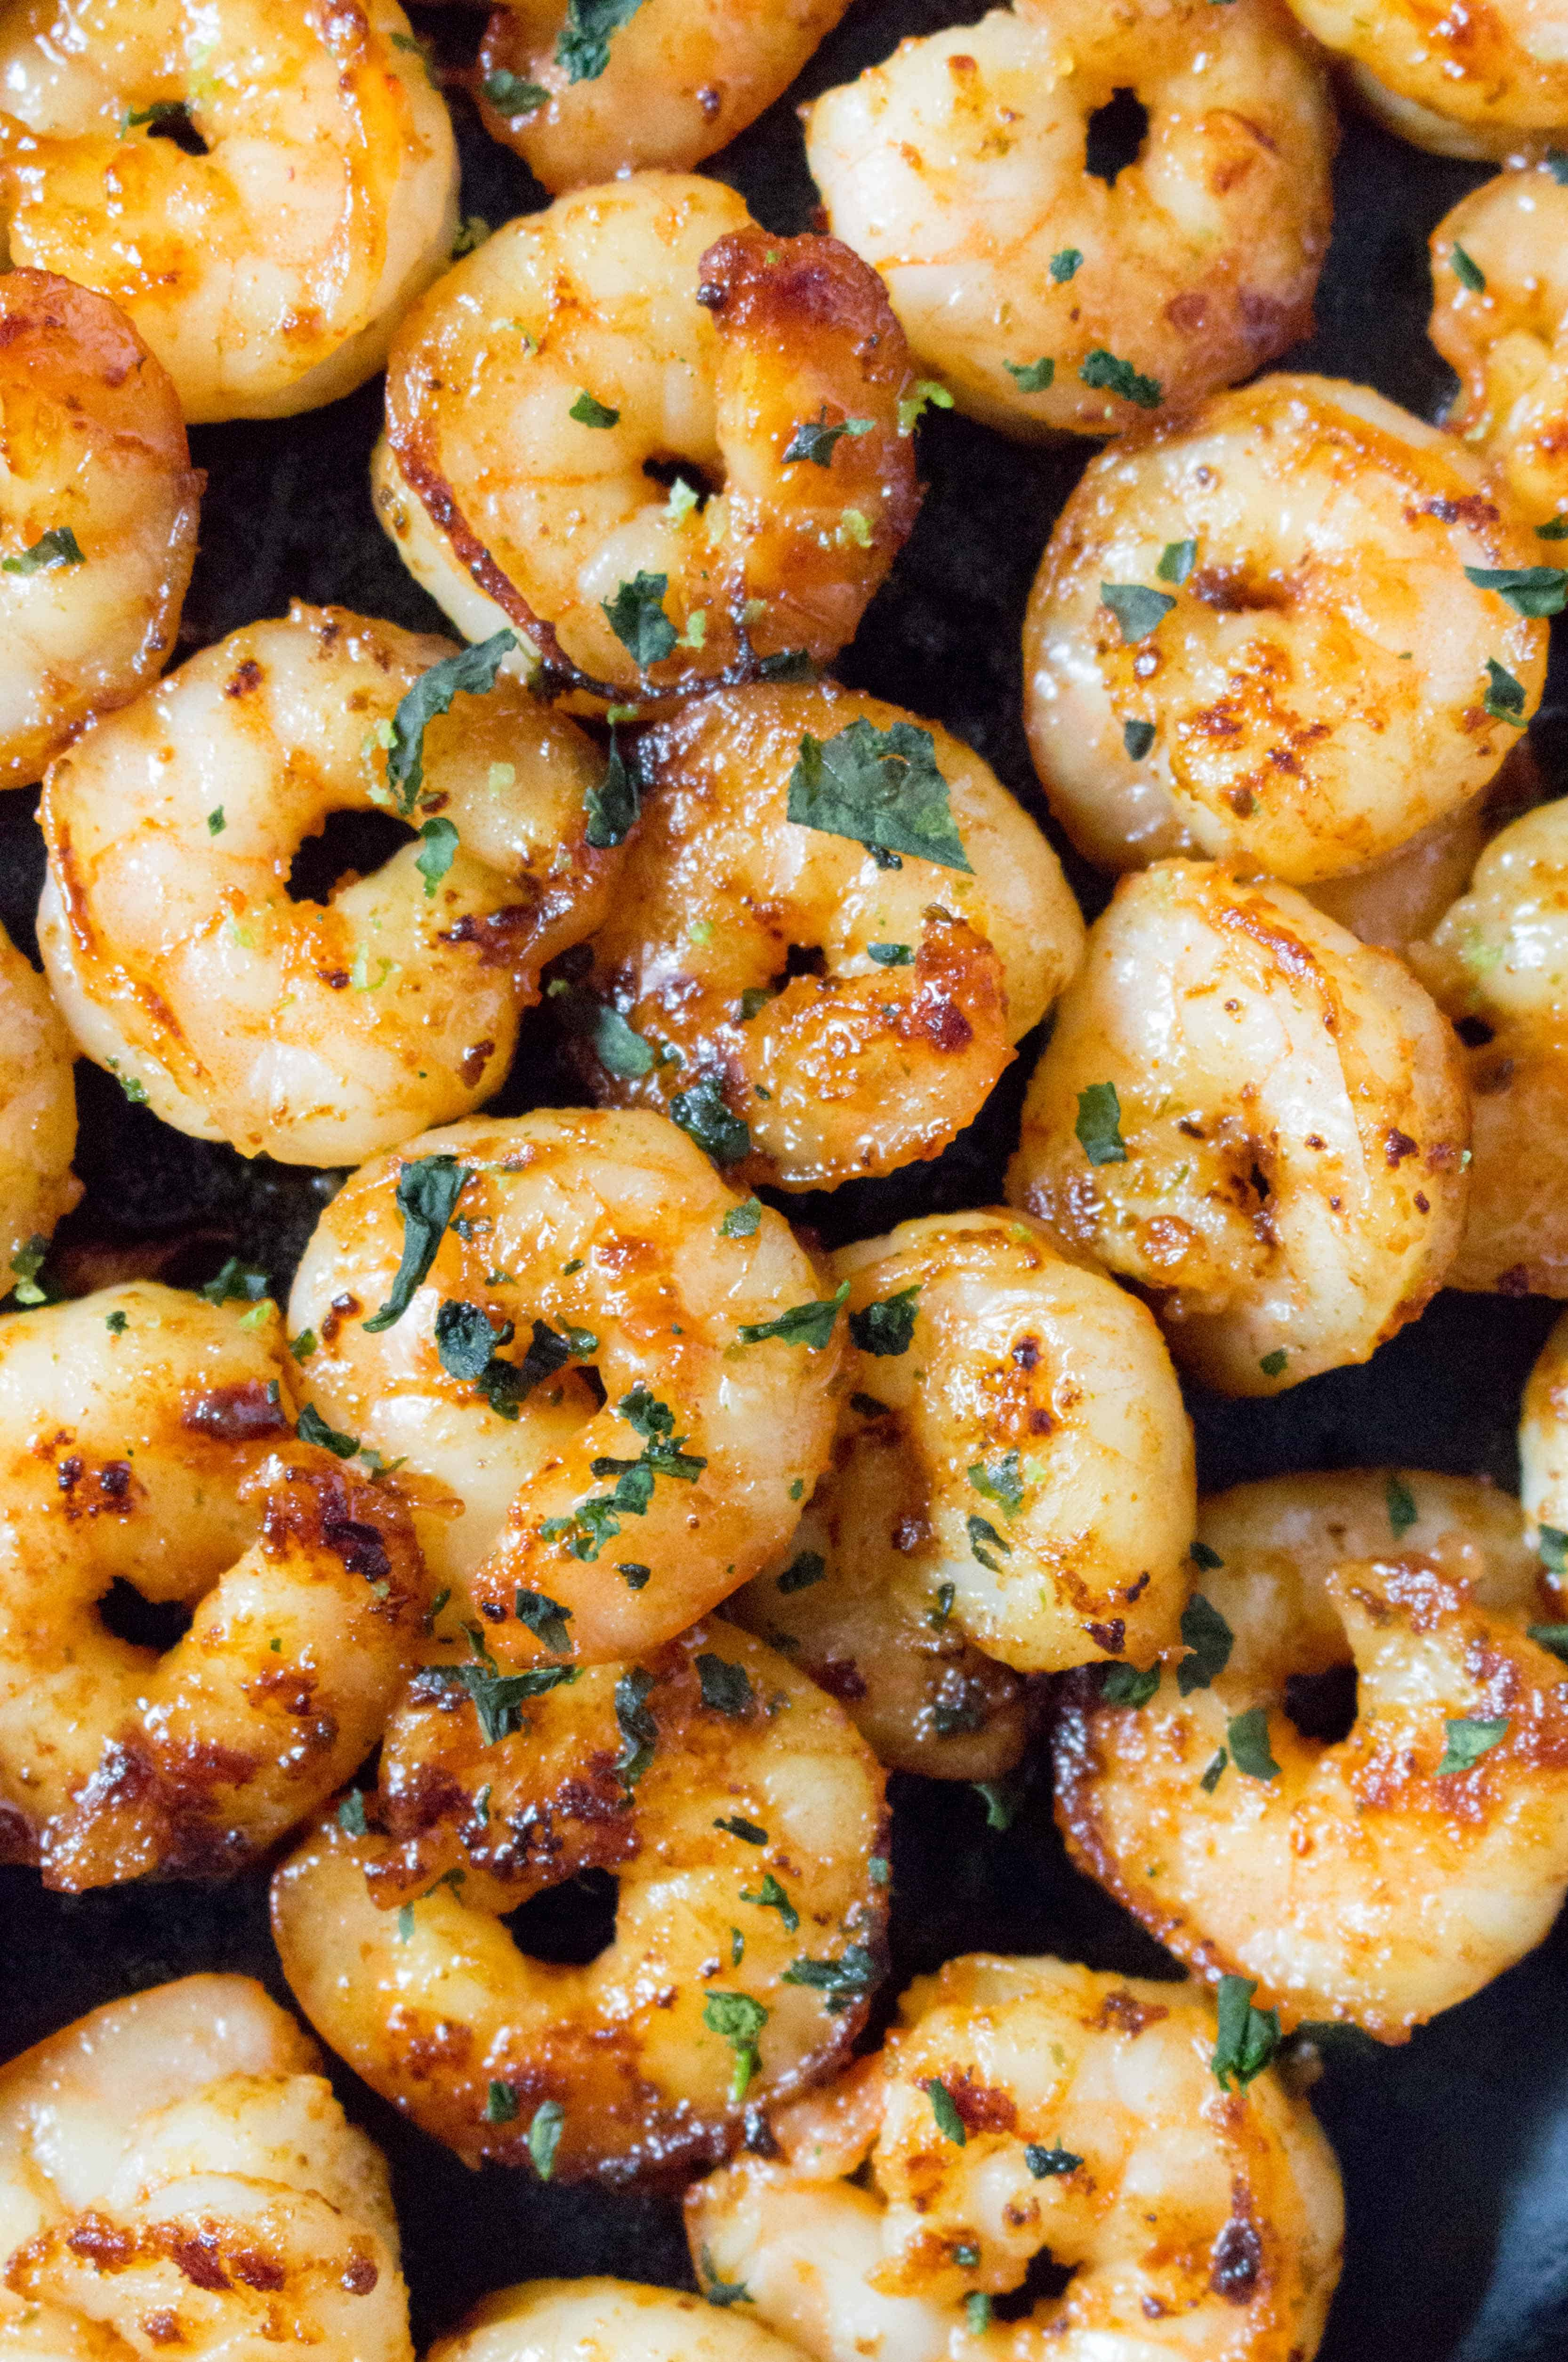 This Honey Garlic Lime Shrimp is perfectly pan seared, sweet and garlicky. Make this for your dinner or meal prep in under 20 minutes.